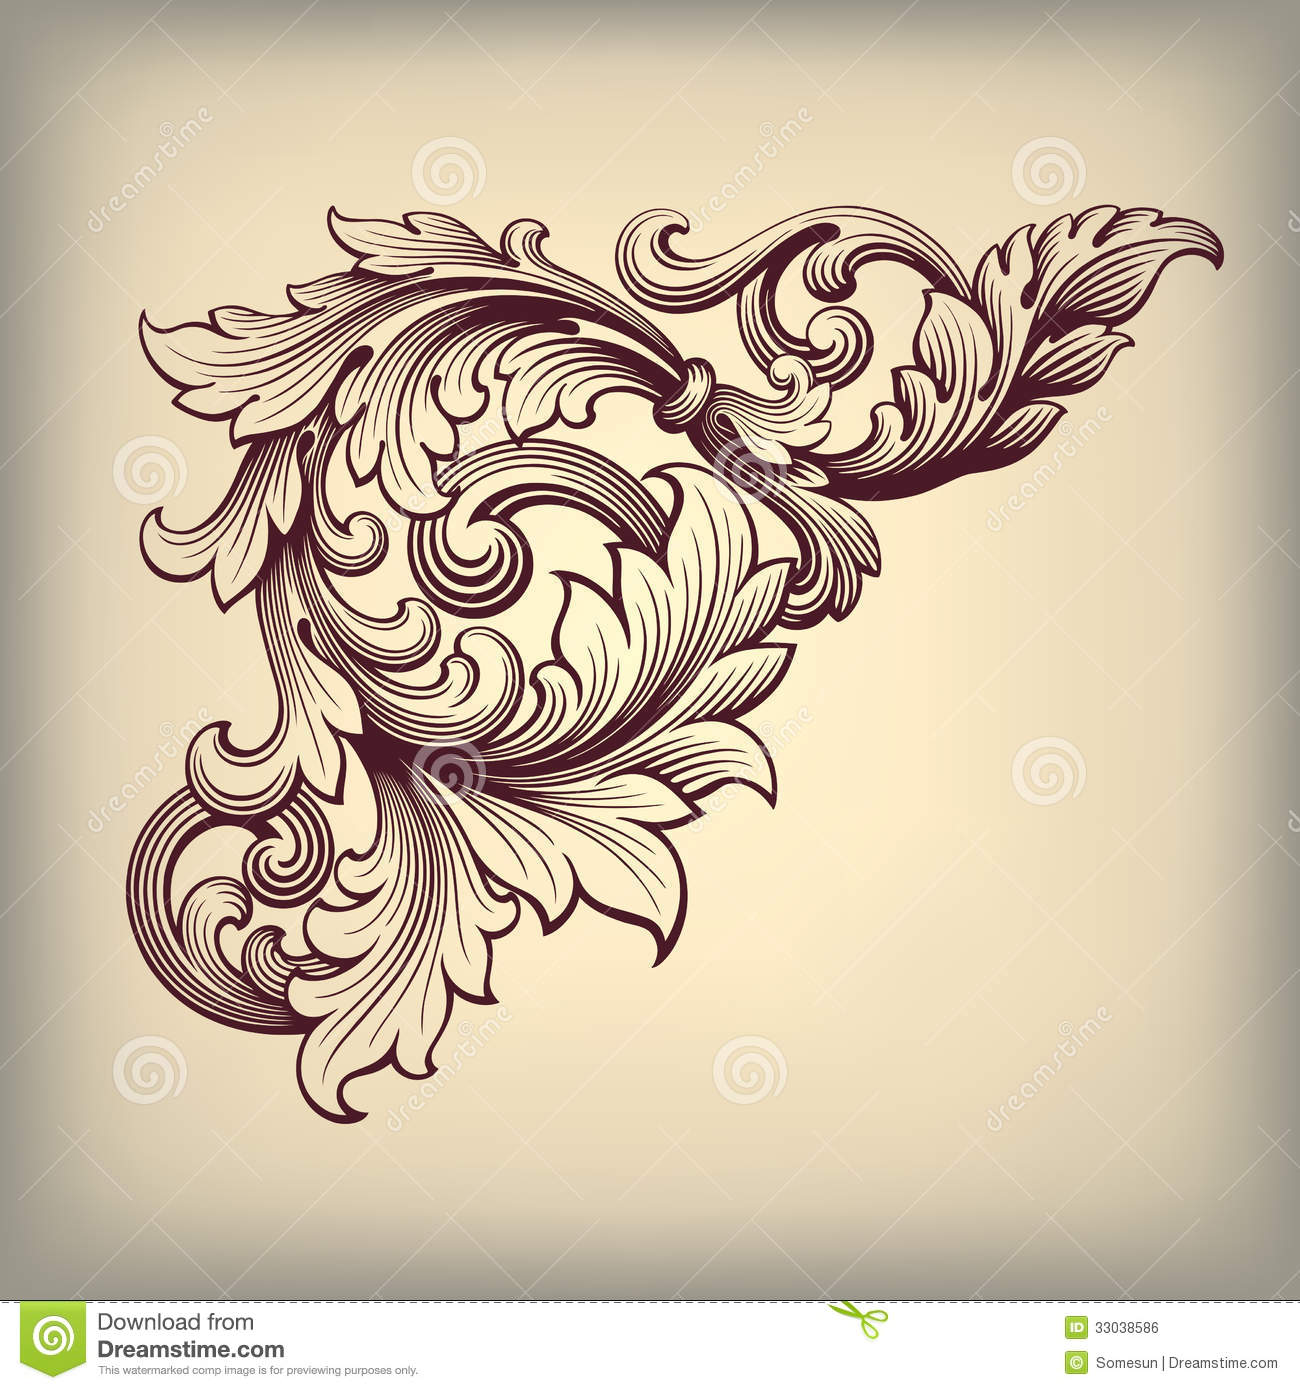 13 Baroque Scroll Designs Images